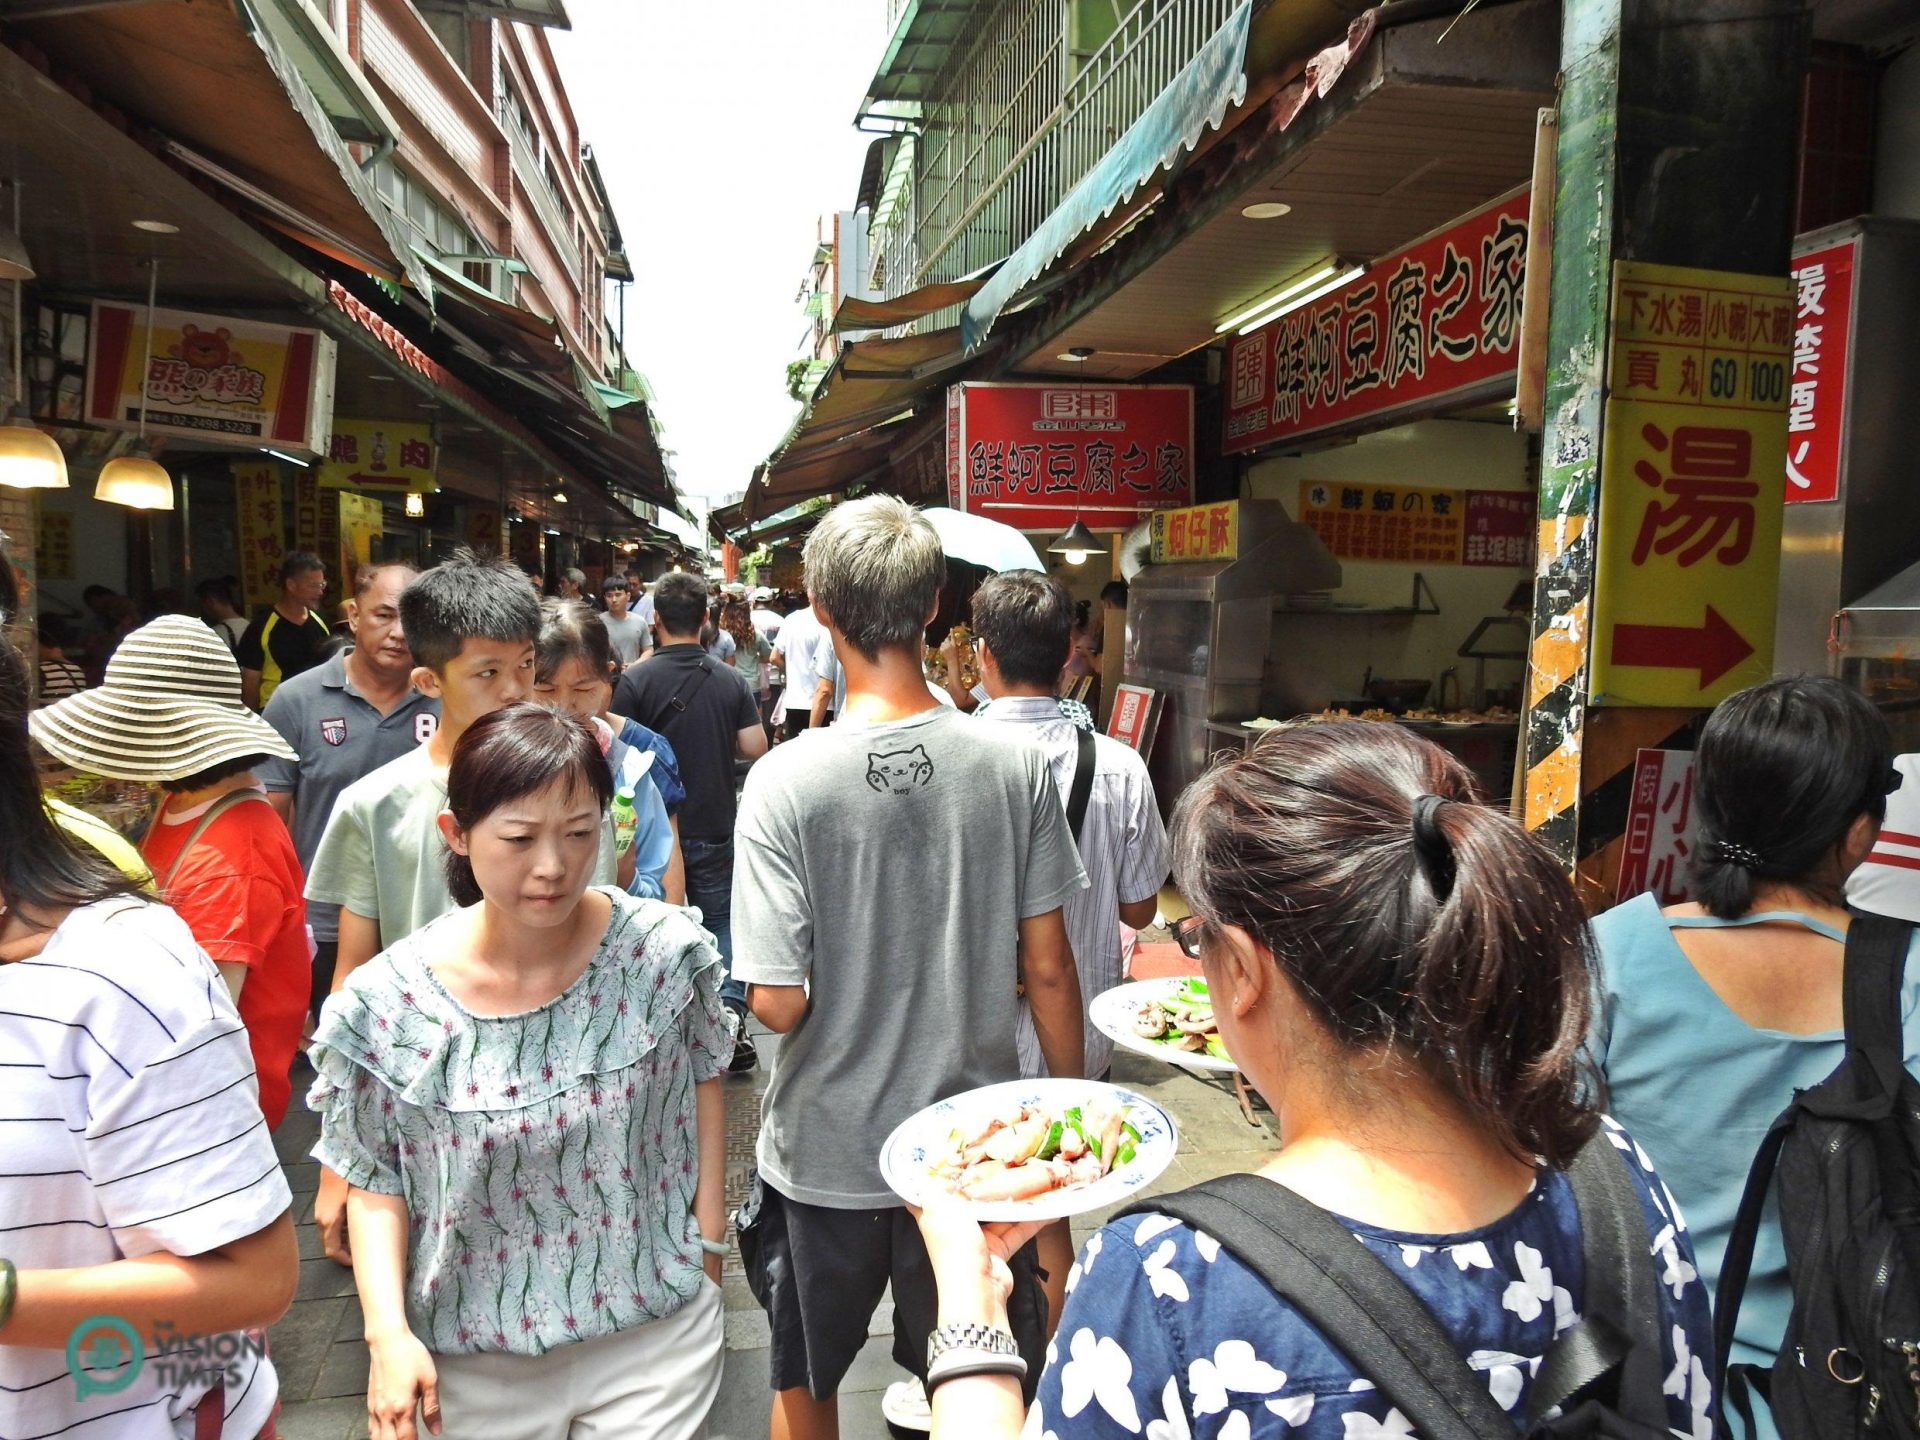 Jinshan Old Street is packed with visitors on weekends and holidays. (Image: Billy Shyu / Vision Times)